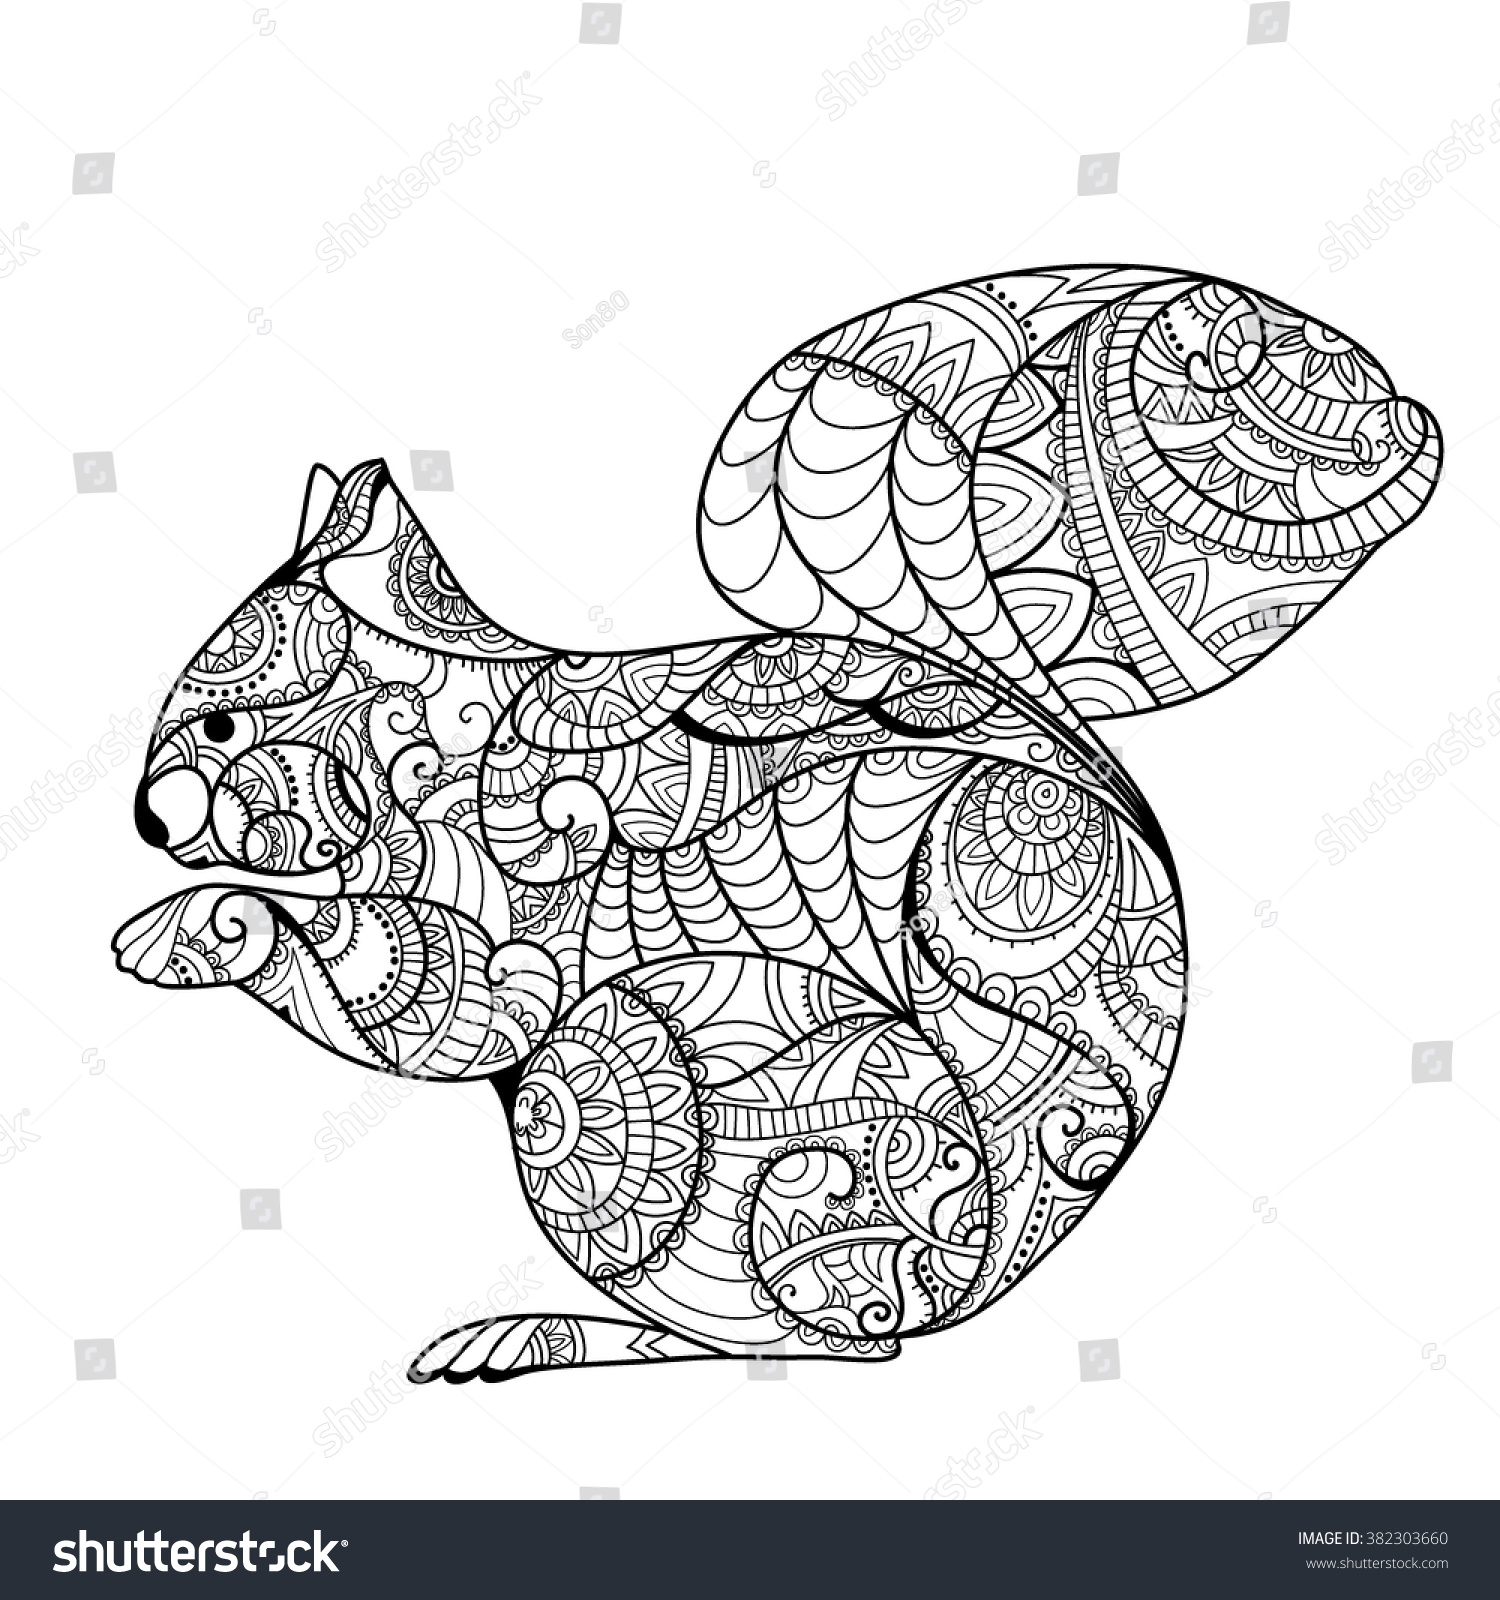 squirrel coloring book hand drawn funny stock vector 382303660